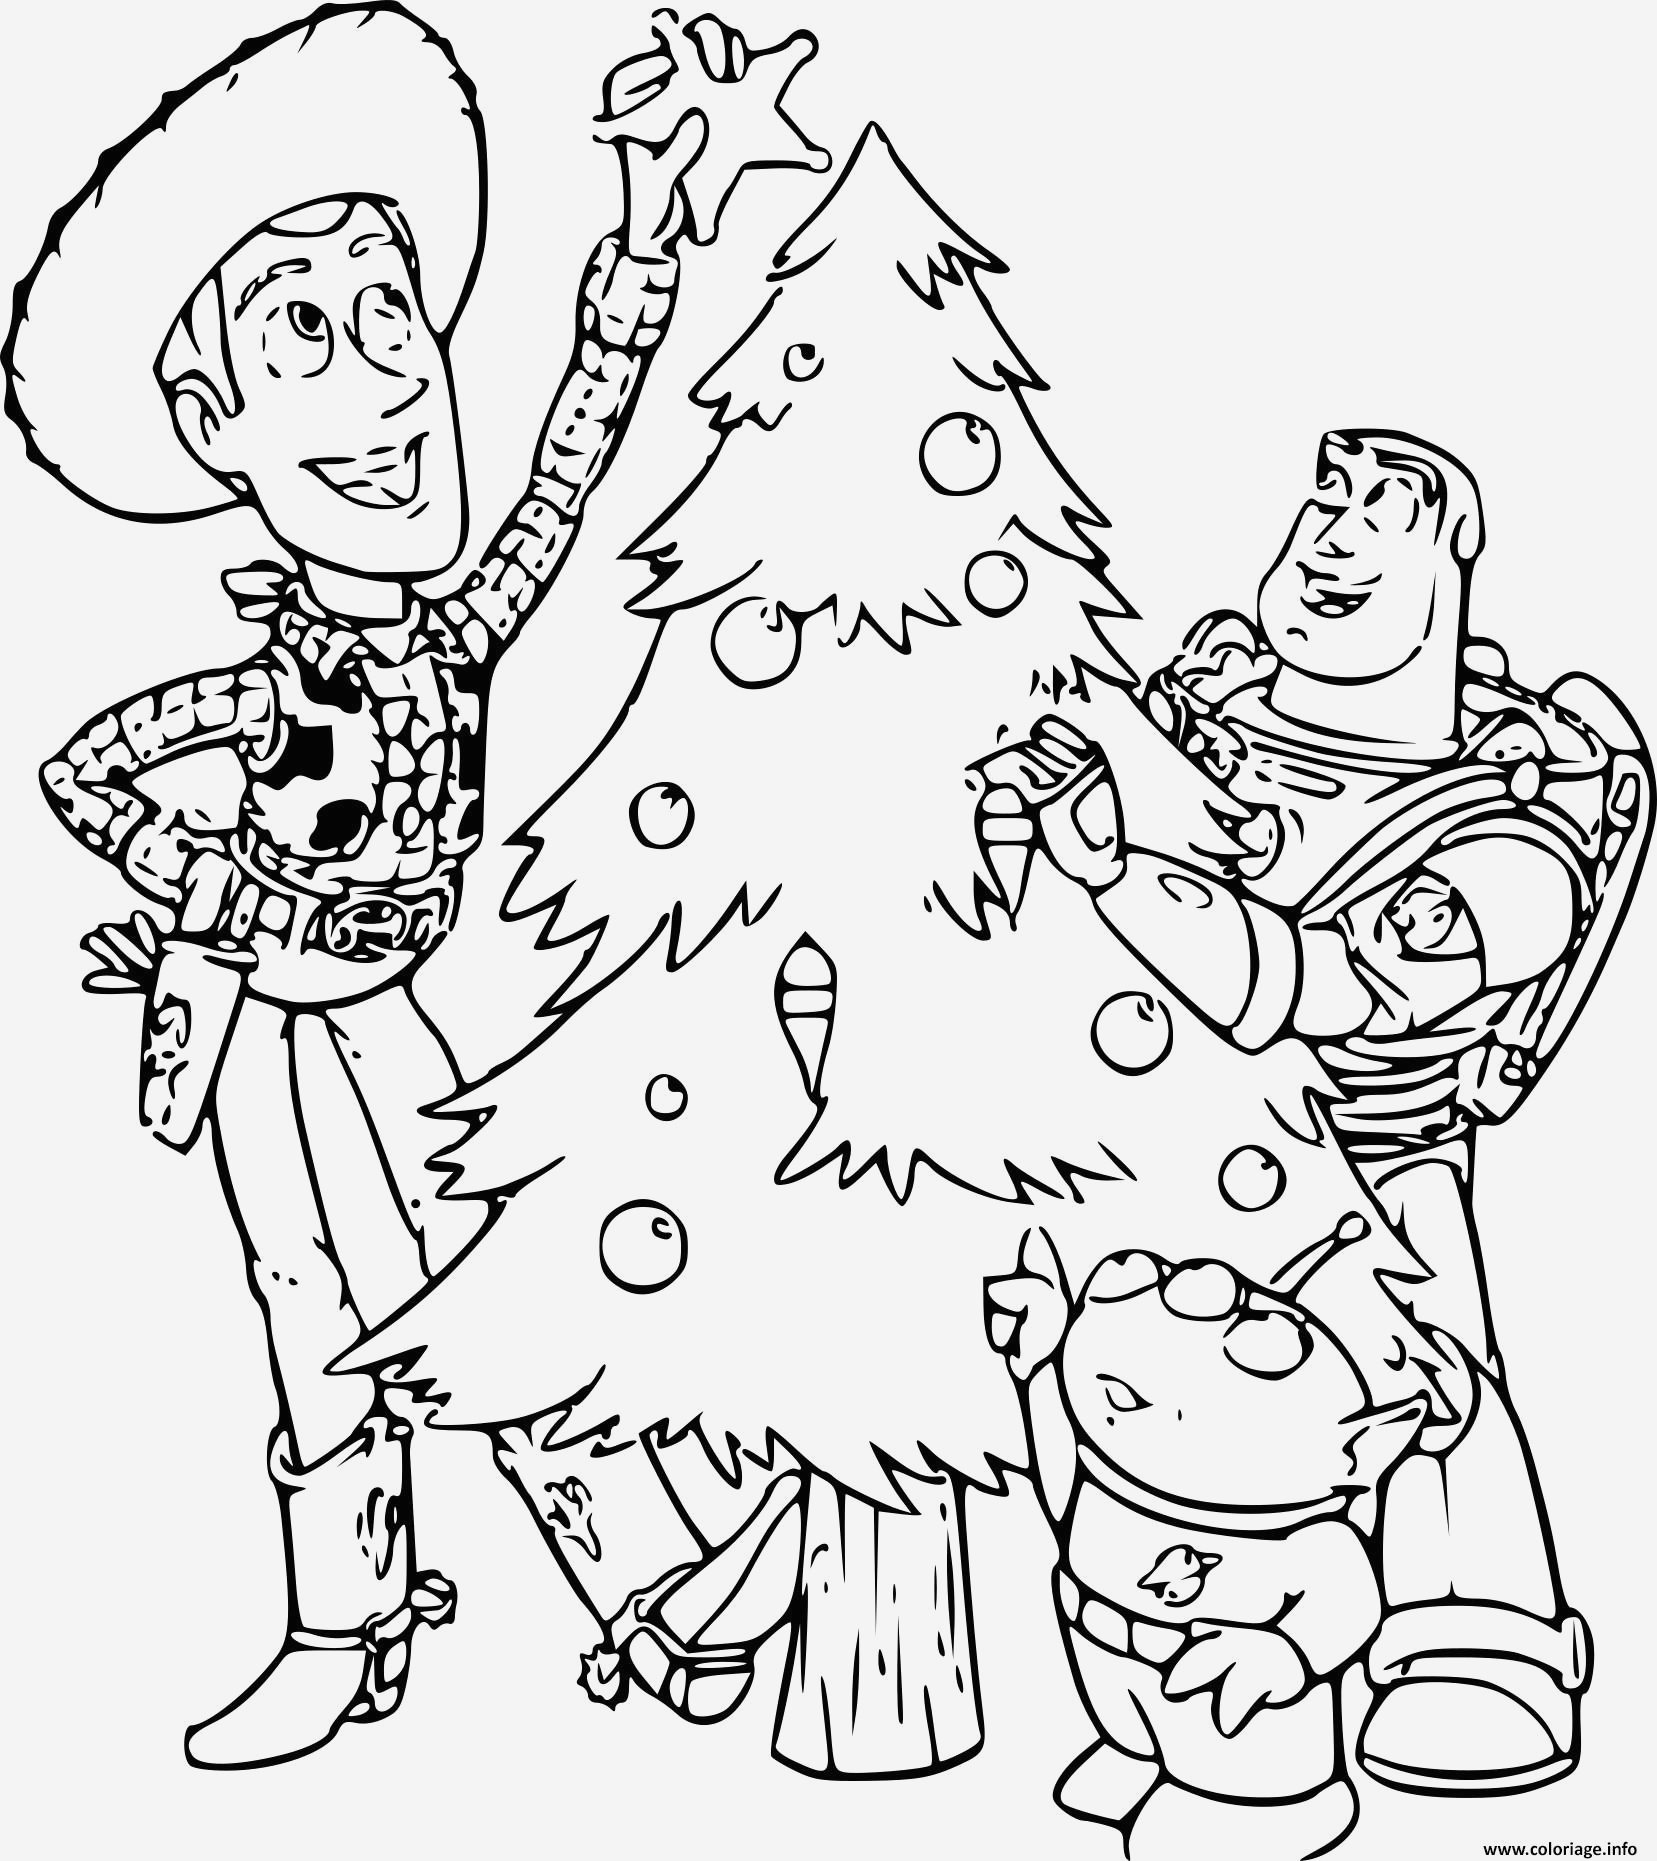 Coloriage toy Story 4 Best Of Coloriage toy Story Noel Jecolorie Of Coloriage toy Story 4